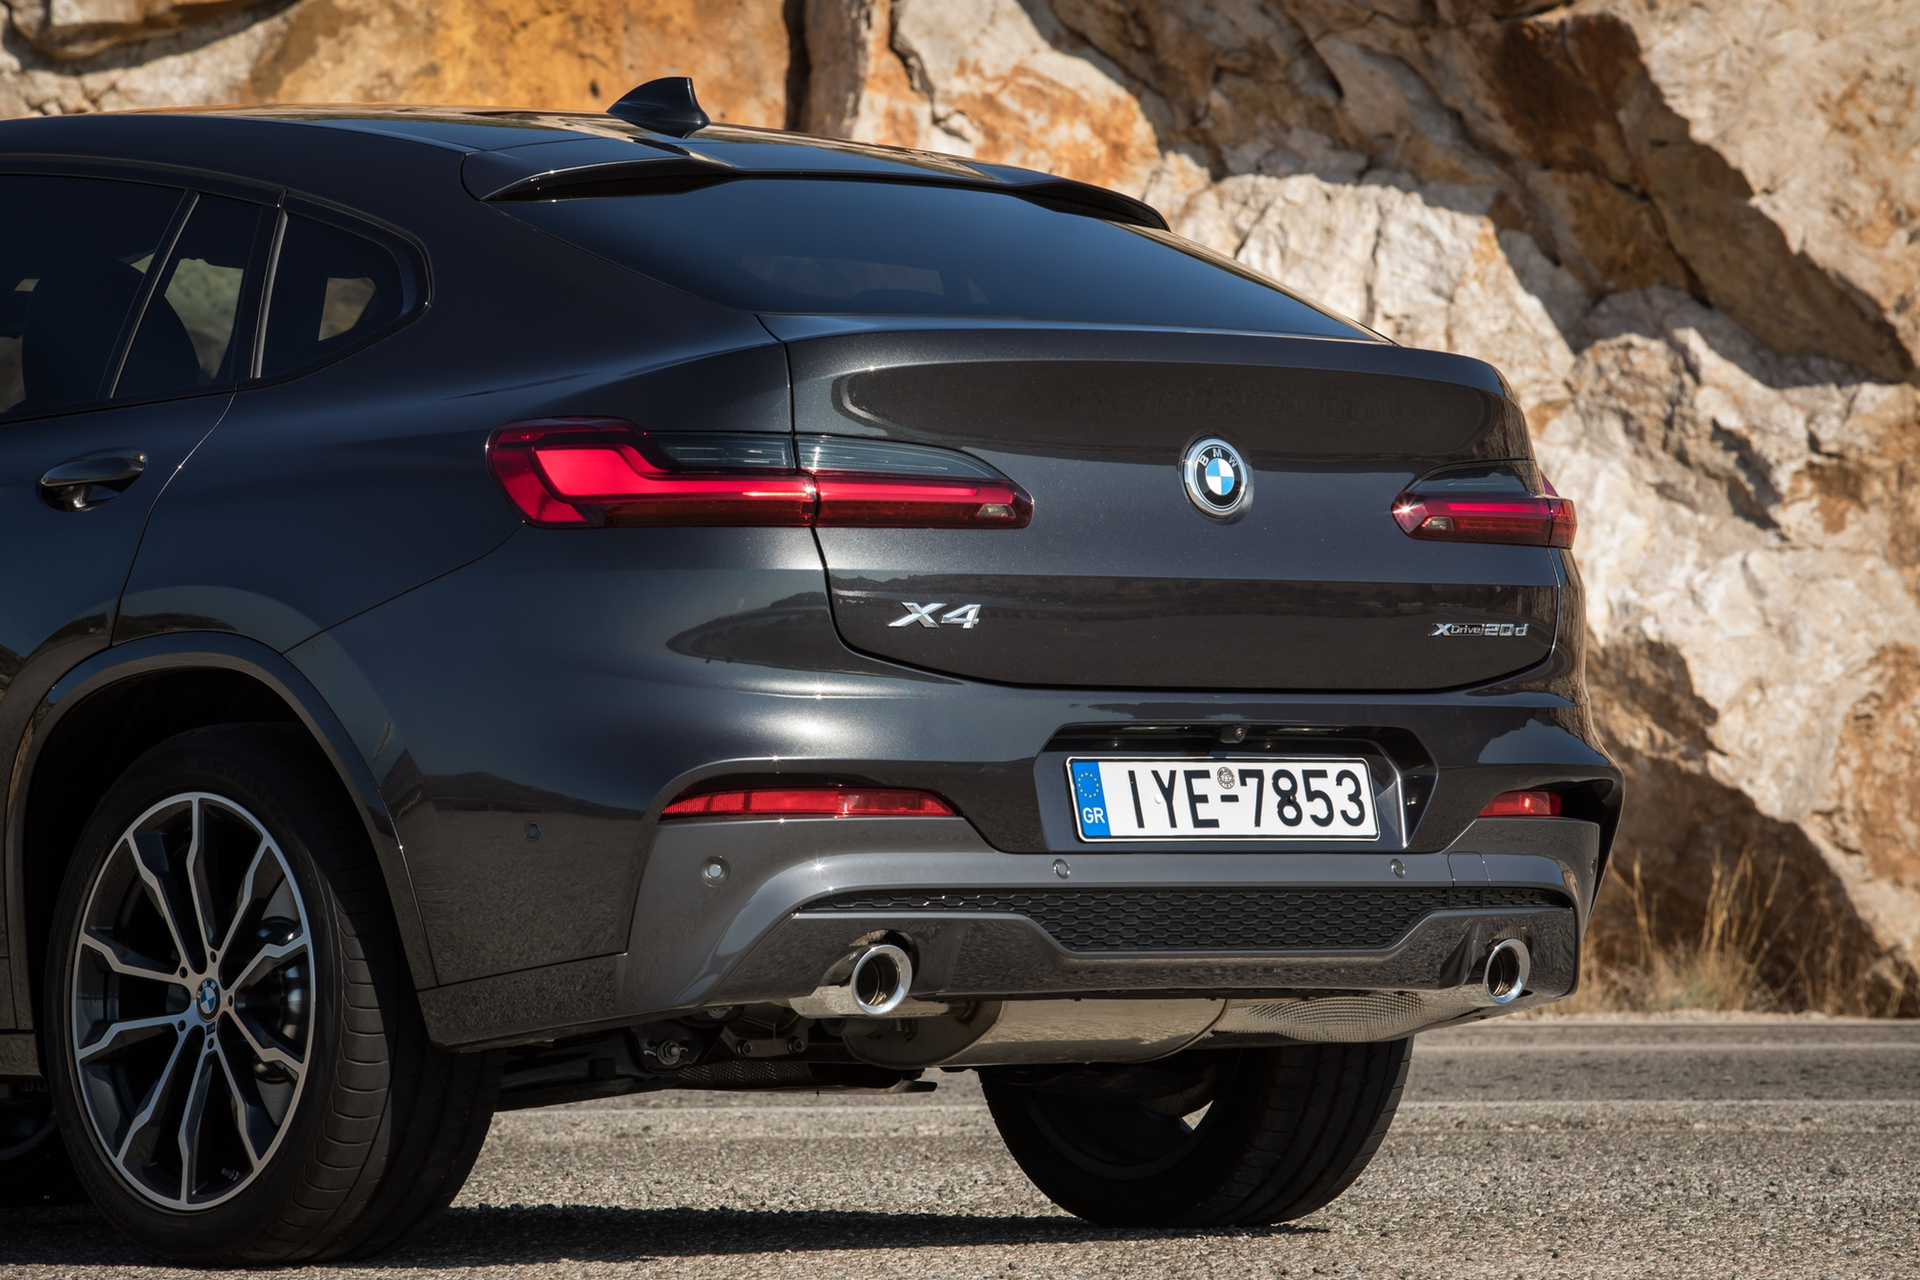 BMW_X4_greek_presskit_0121